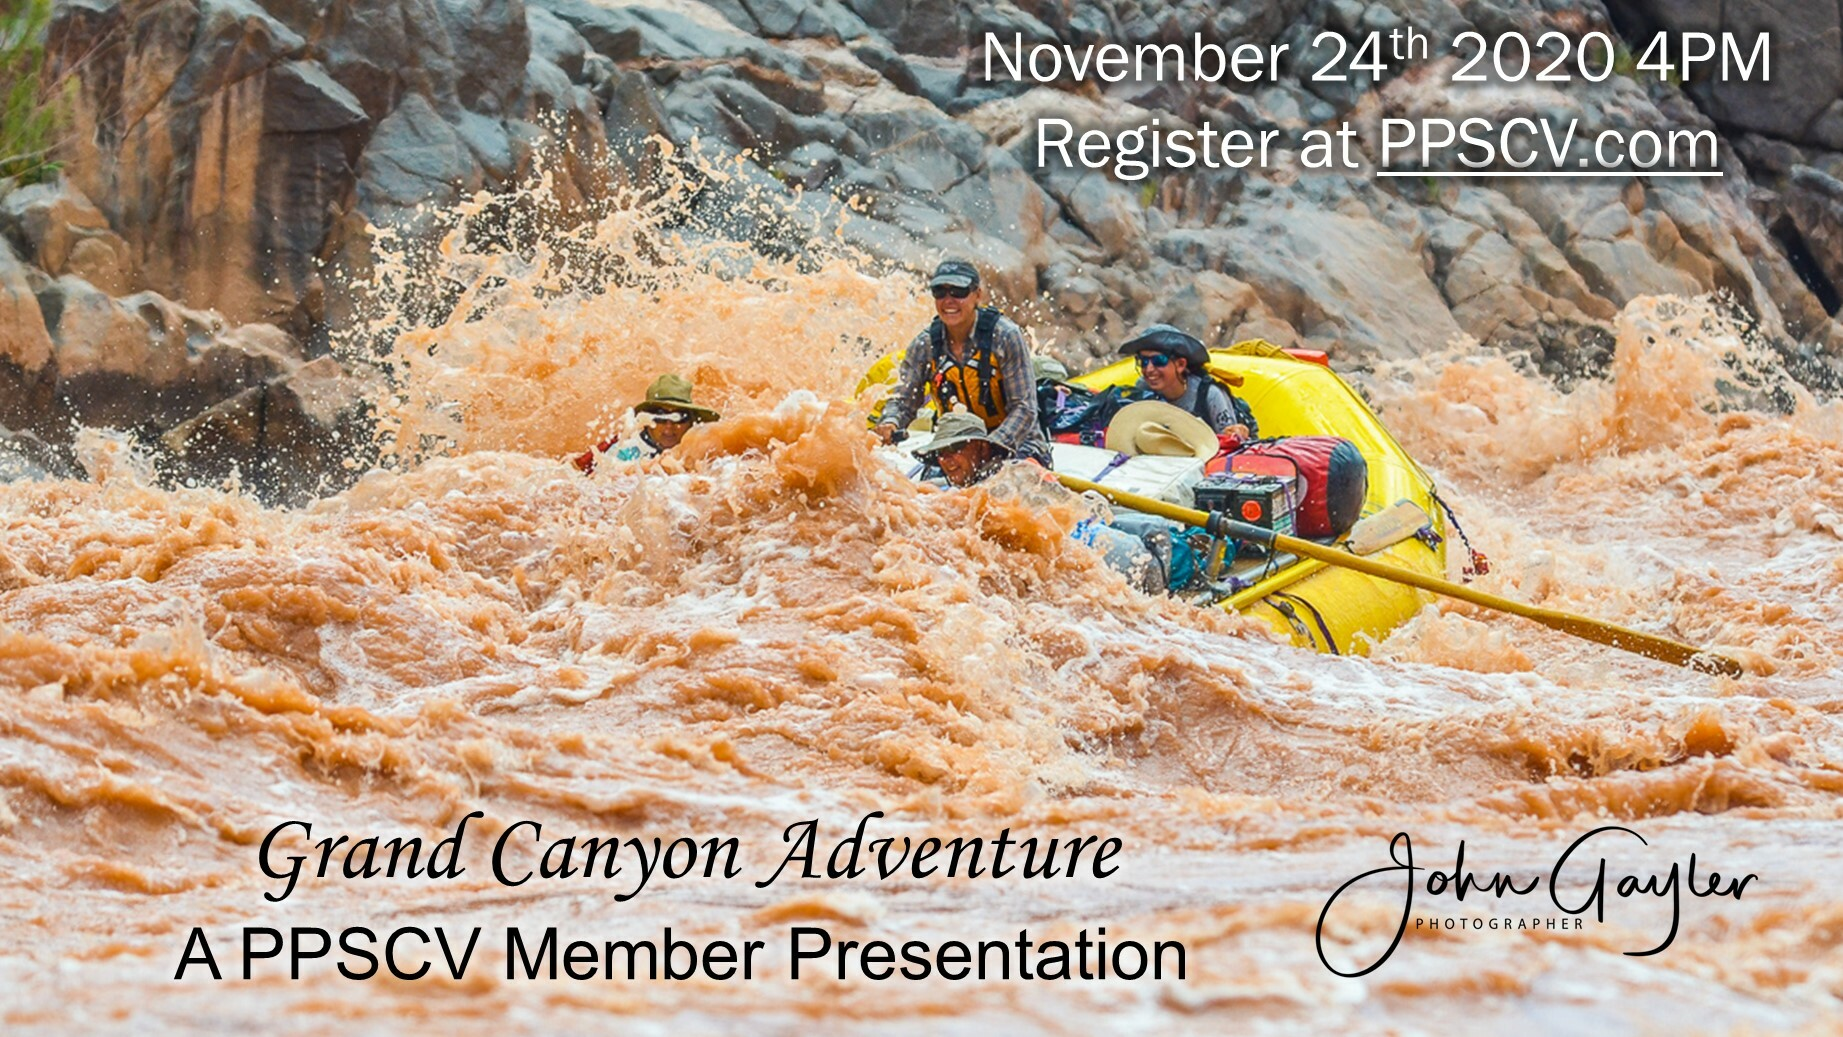 PPSCV Member Presentation Rafting the Grand Canyon Event